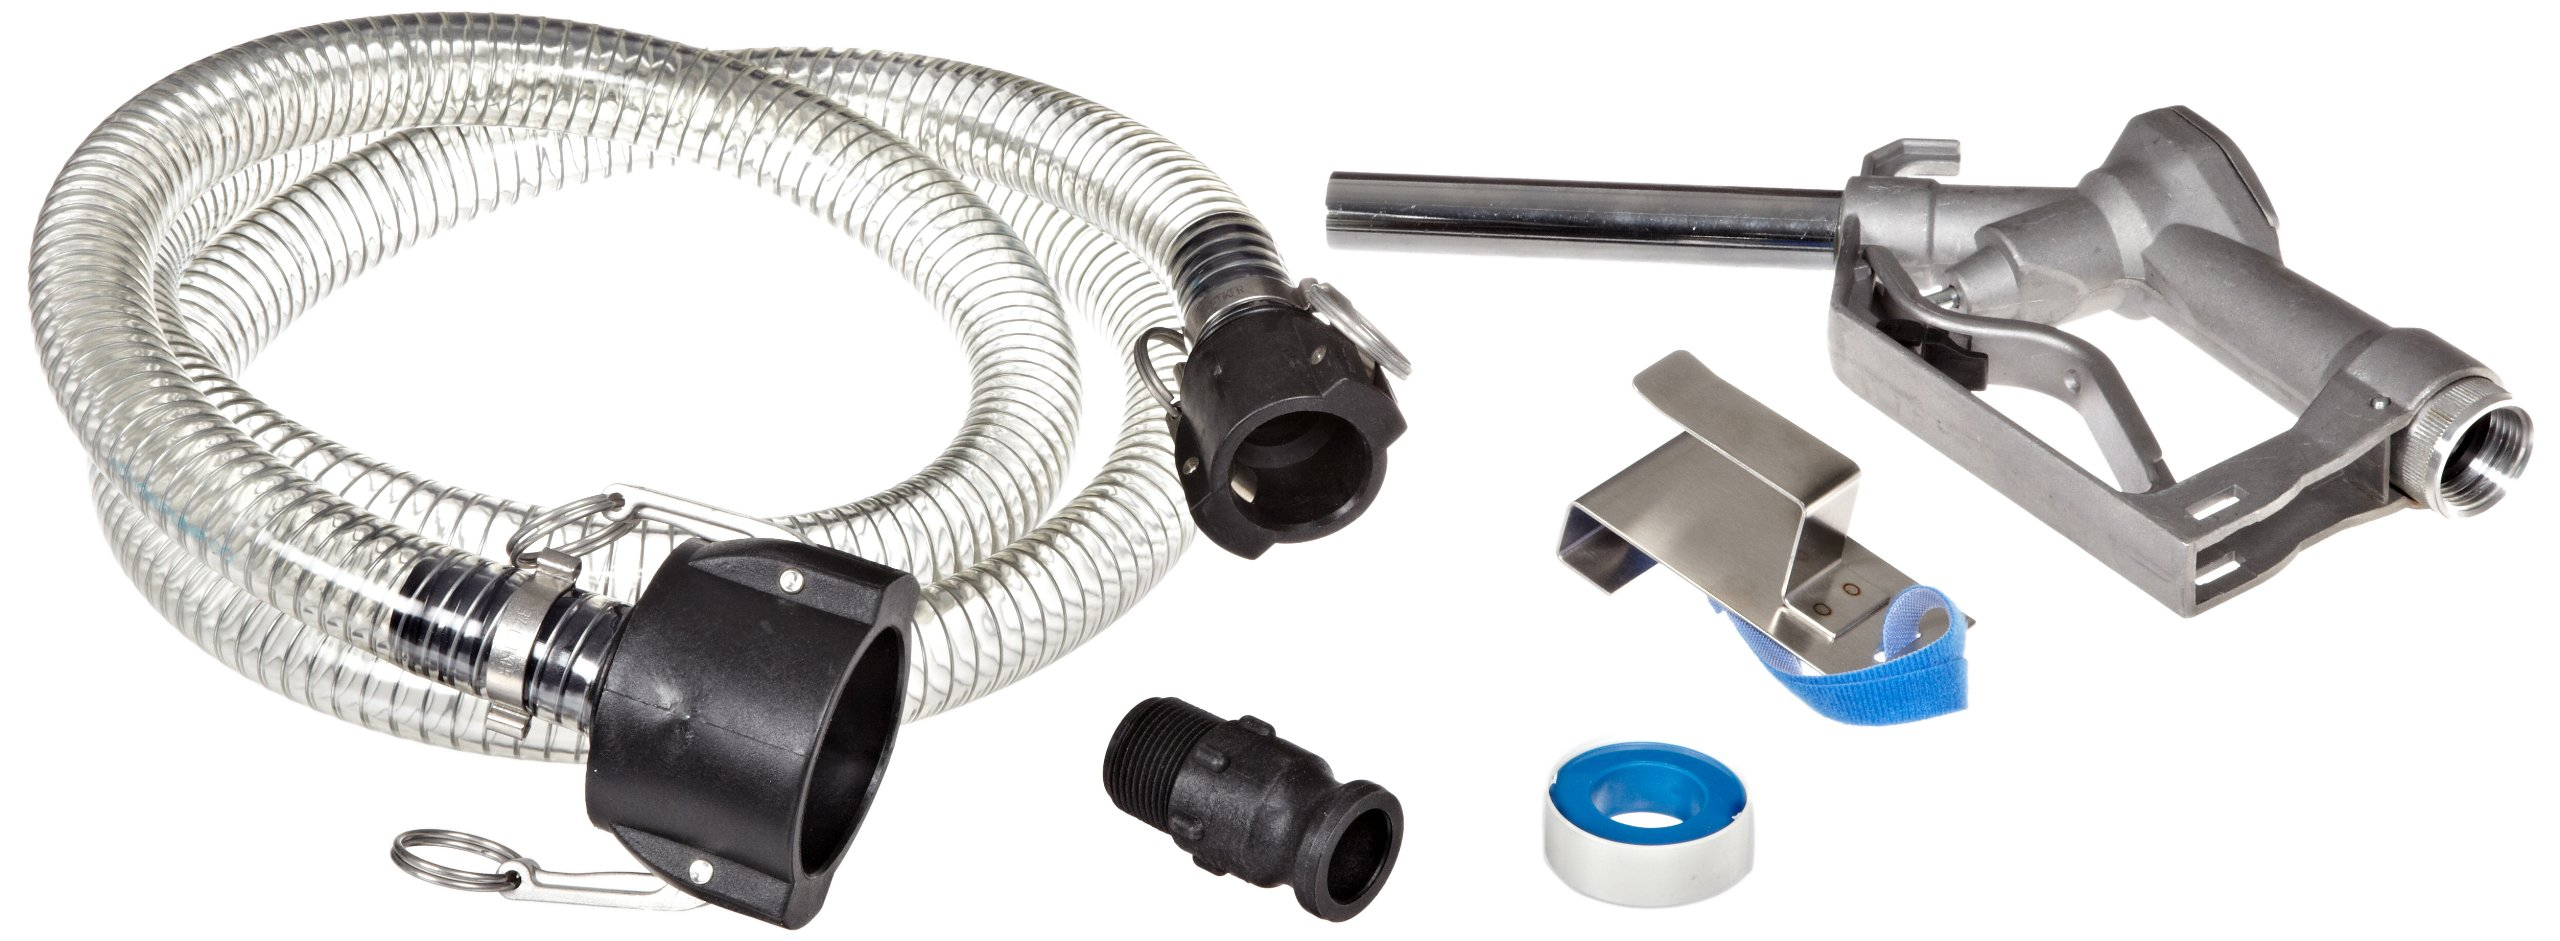 Action Pump IBC-HK-8A2C IBC Kit Aluminum Nozzle 2'' Camlock by Action Pump (Image #1)